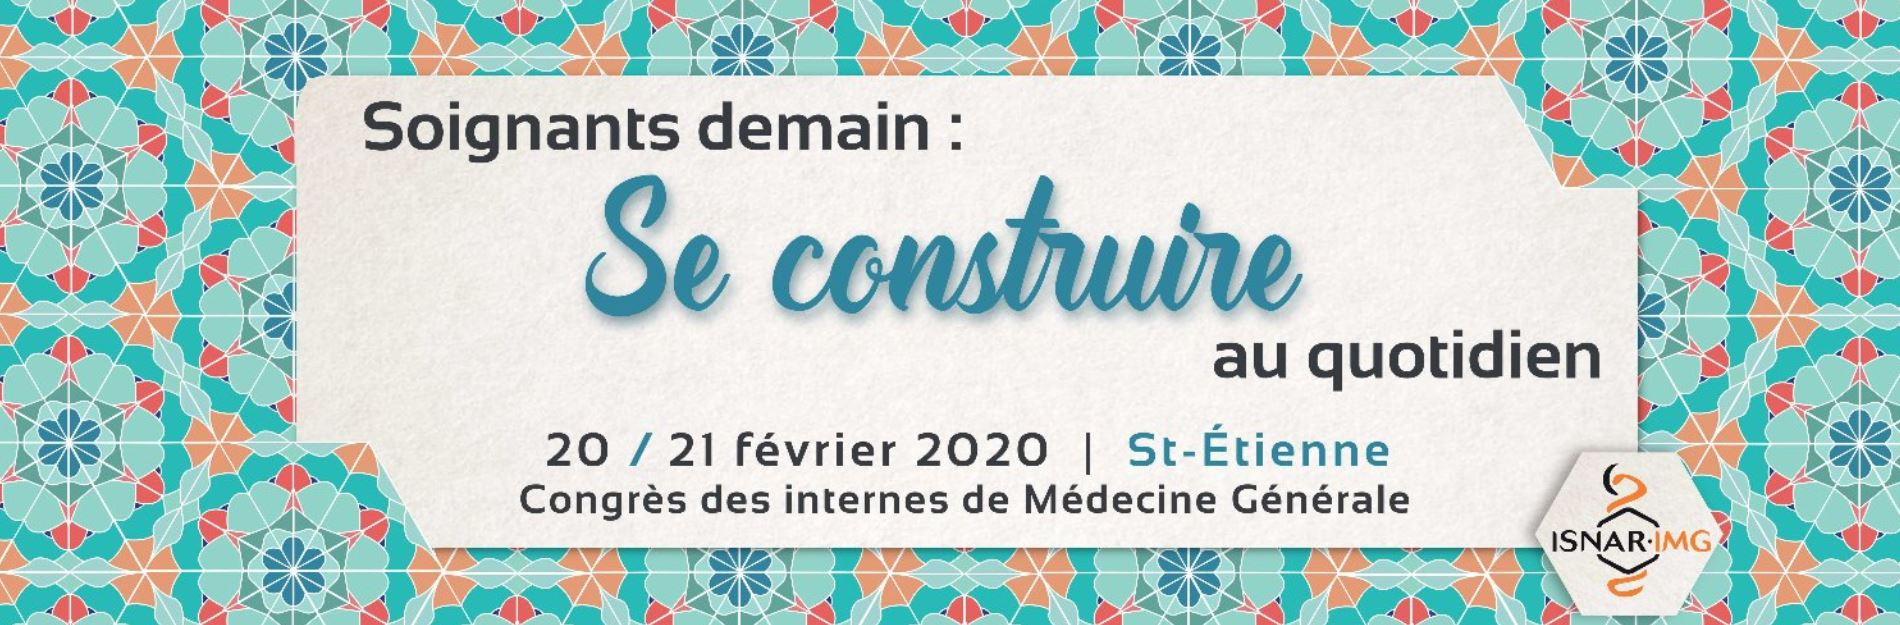 congres isnar-img février 2020